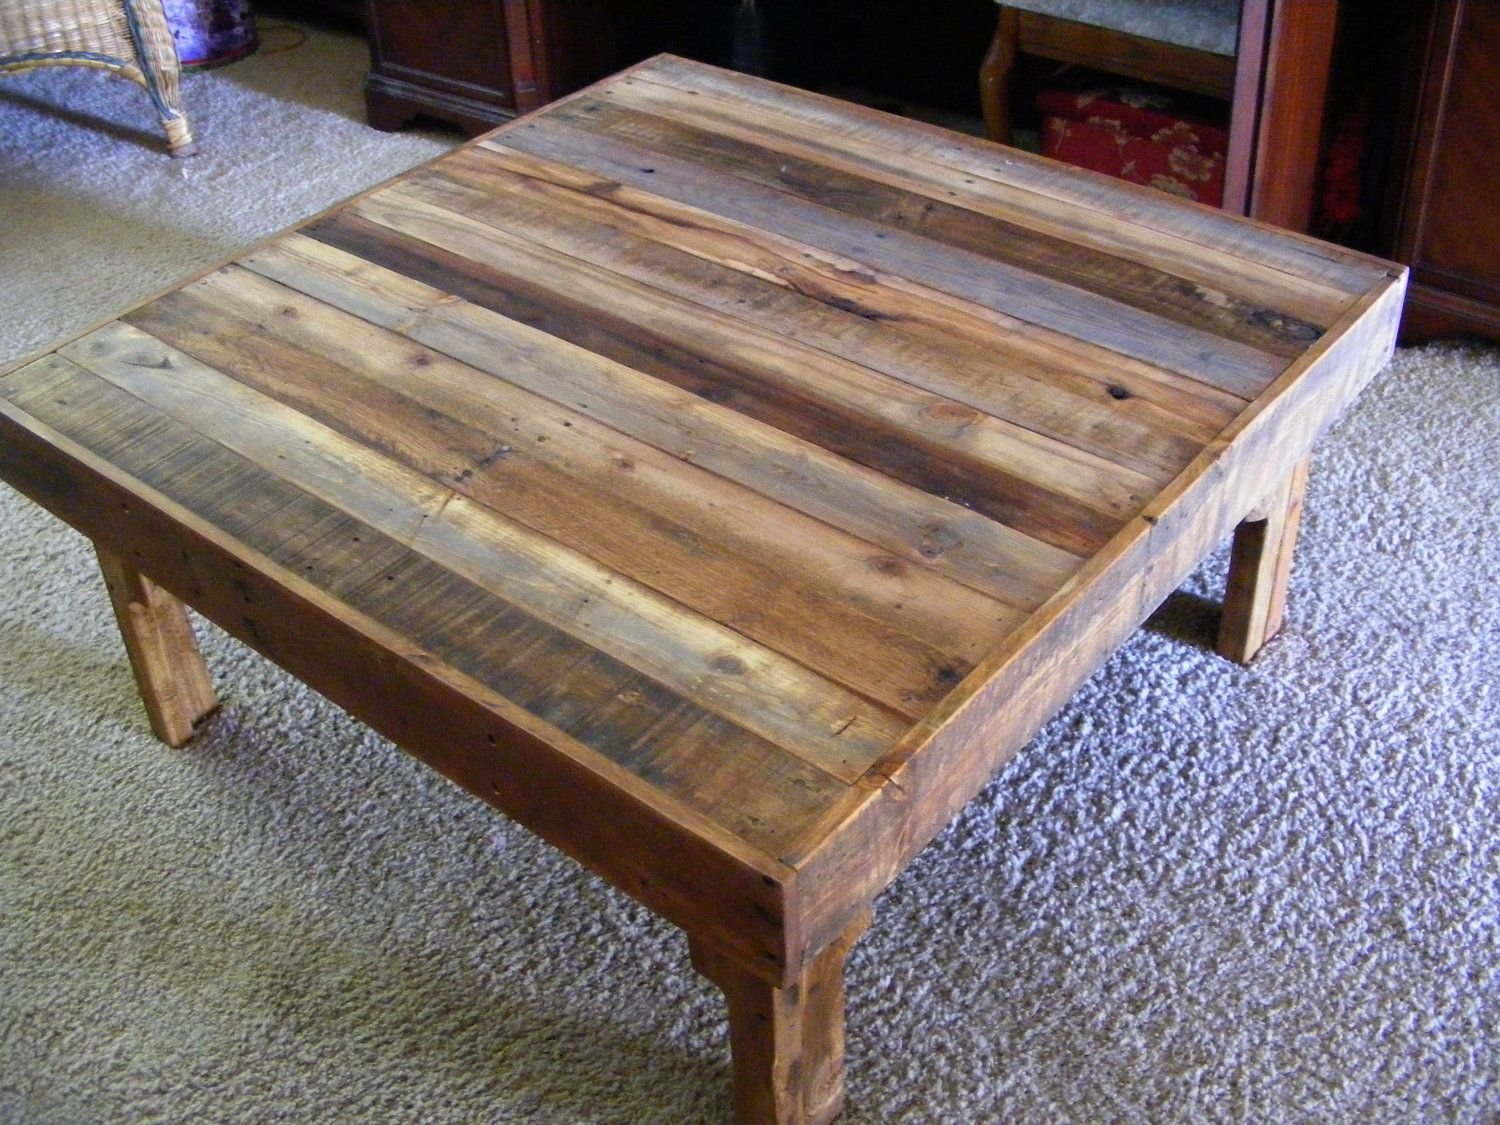 Reserved Order For Megan Large Square Rustic Reclaimed Wood Coffee Table With Shelf 35 X 35 X